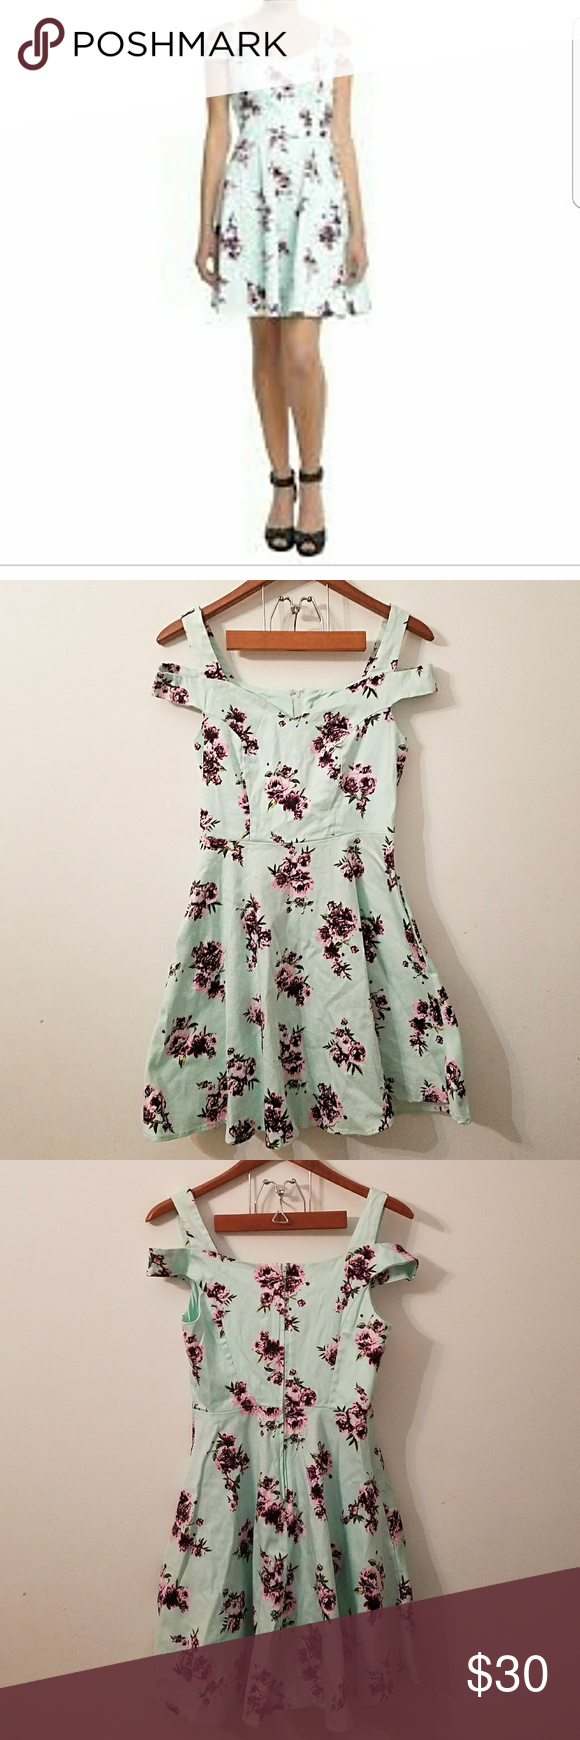 6a00bce0ae38 Mint floral off the shoulder fit and flare dress Mint floral off the shoulder  dress. It is a fit and flare style dress from hot topic. It has a purple  pink ...